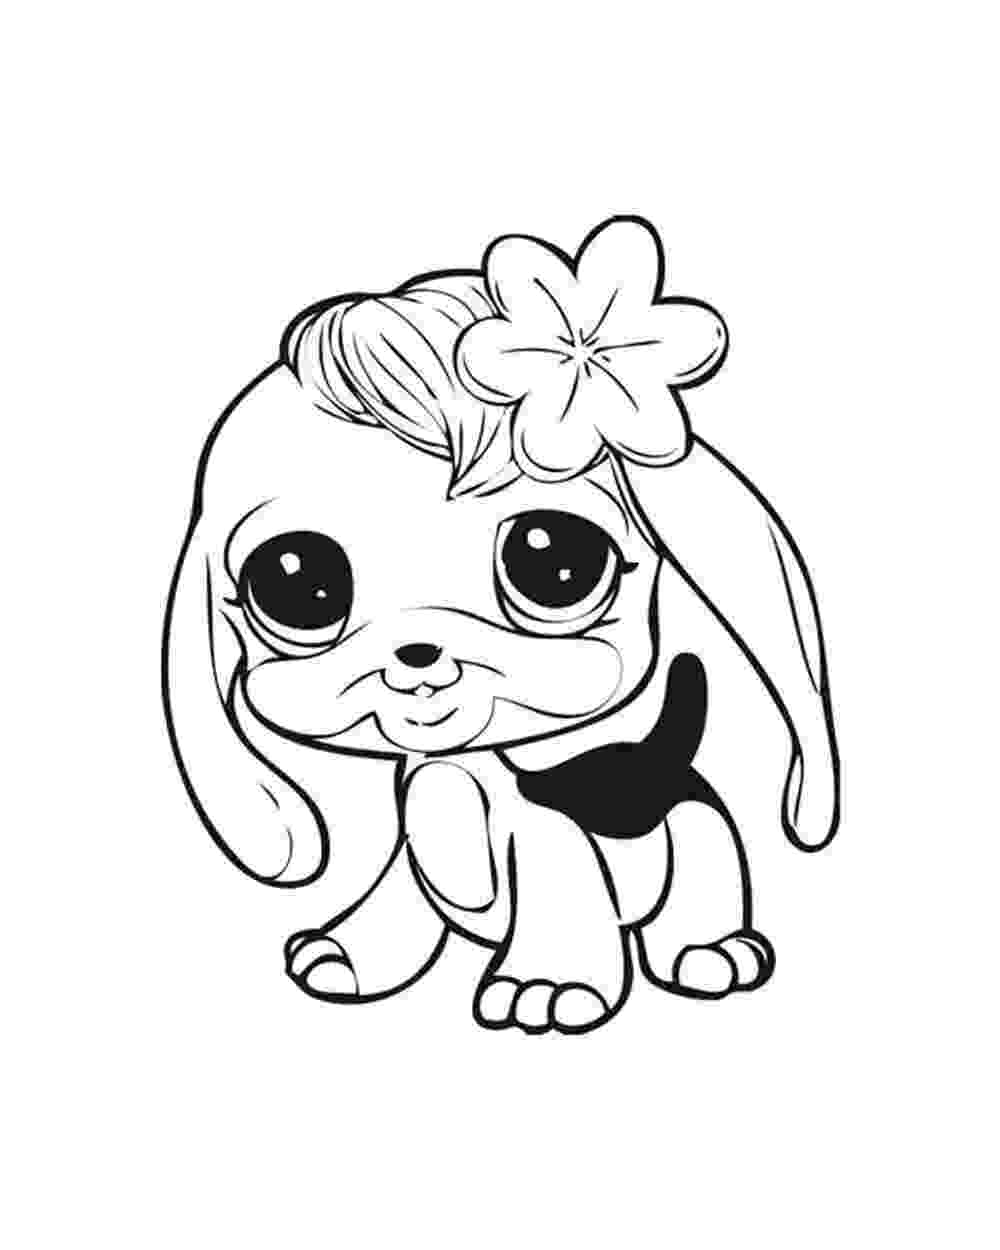 littlest pet shop coloring pages 20 best images about littlest pet shop coloring pages on coloring littlest pet pages shop